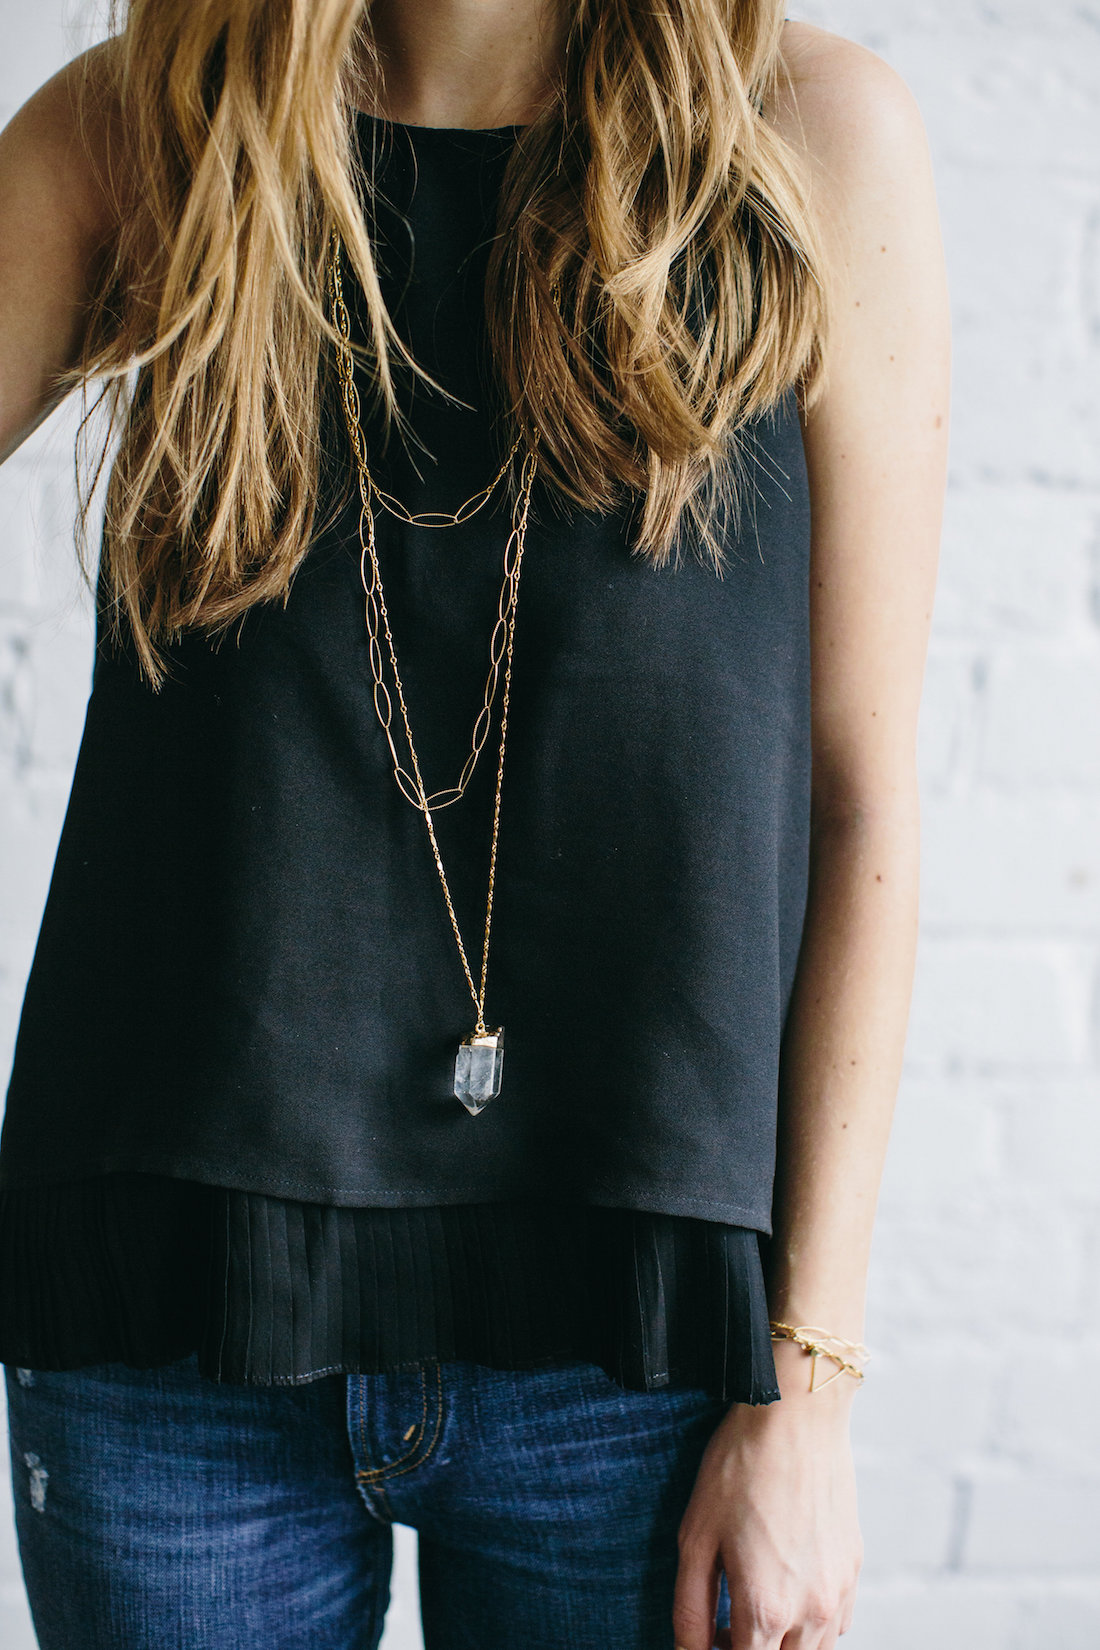 The    Bexley necklace